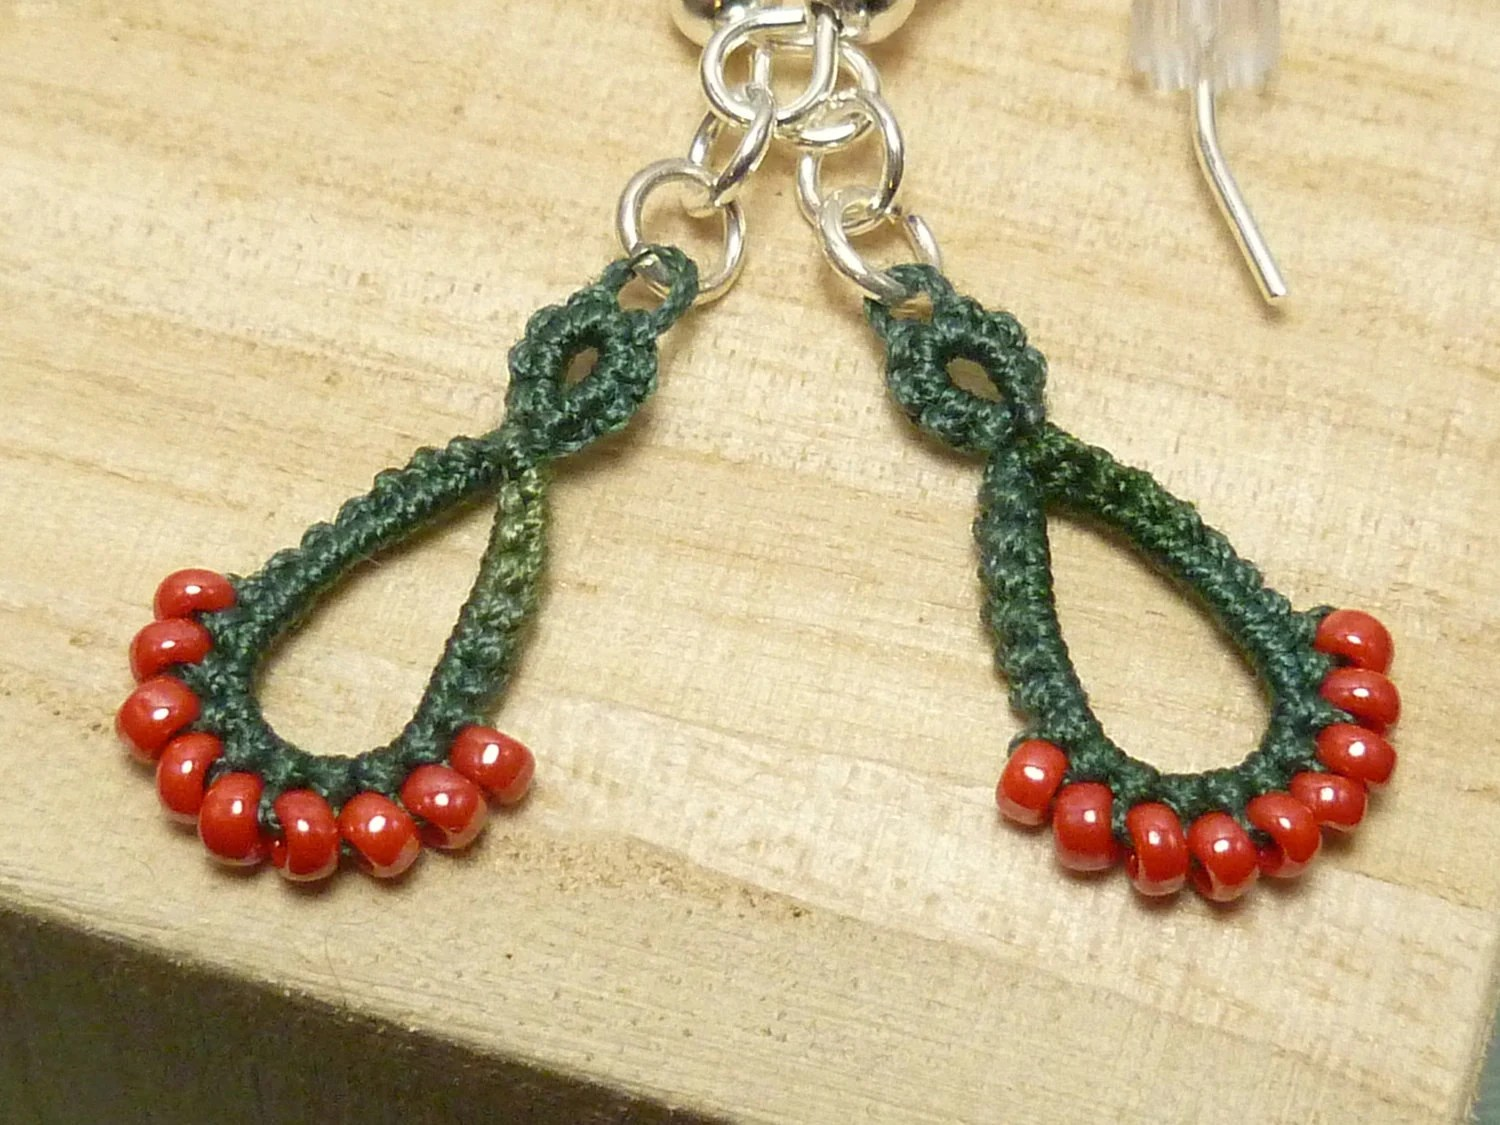 Tatted lace earrings in red and green -DRIPs